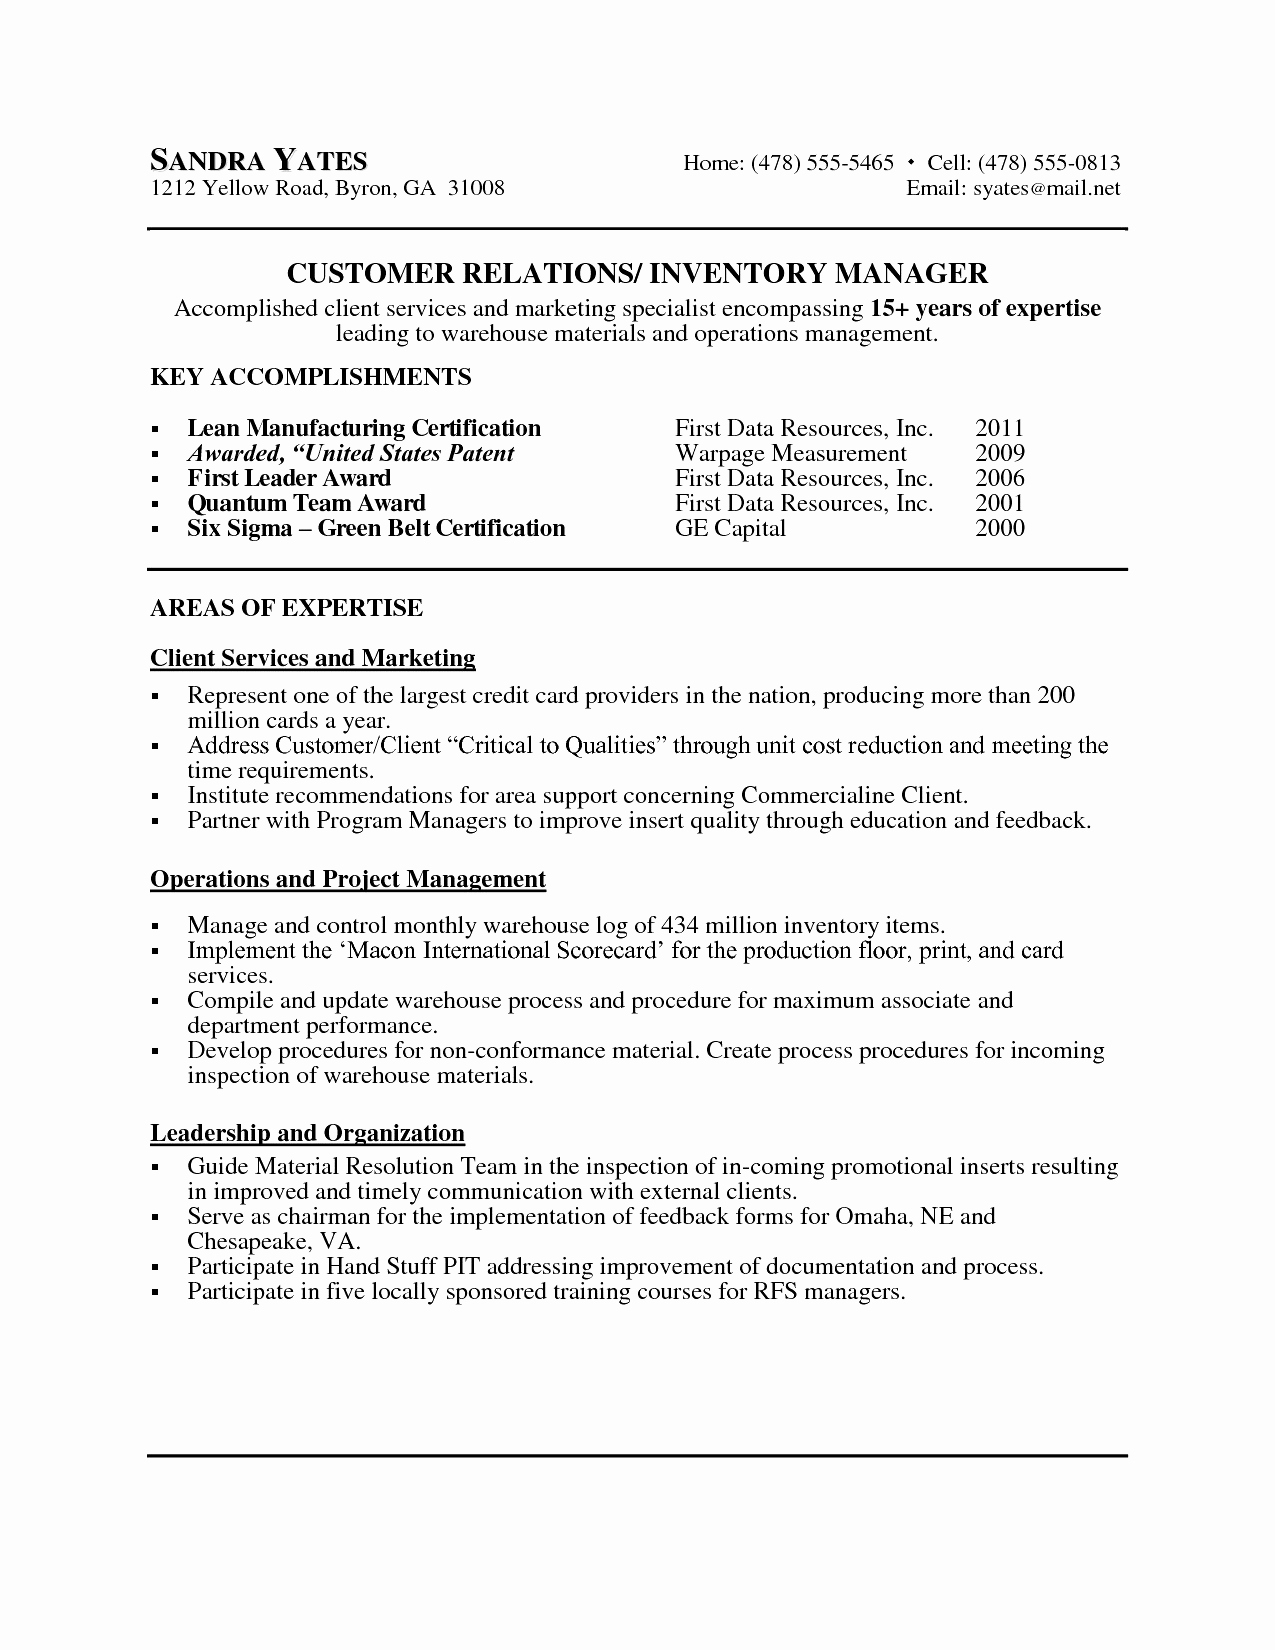 Application Cover Letter Template - 20 Application Cover Letter Template